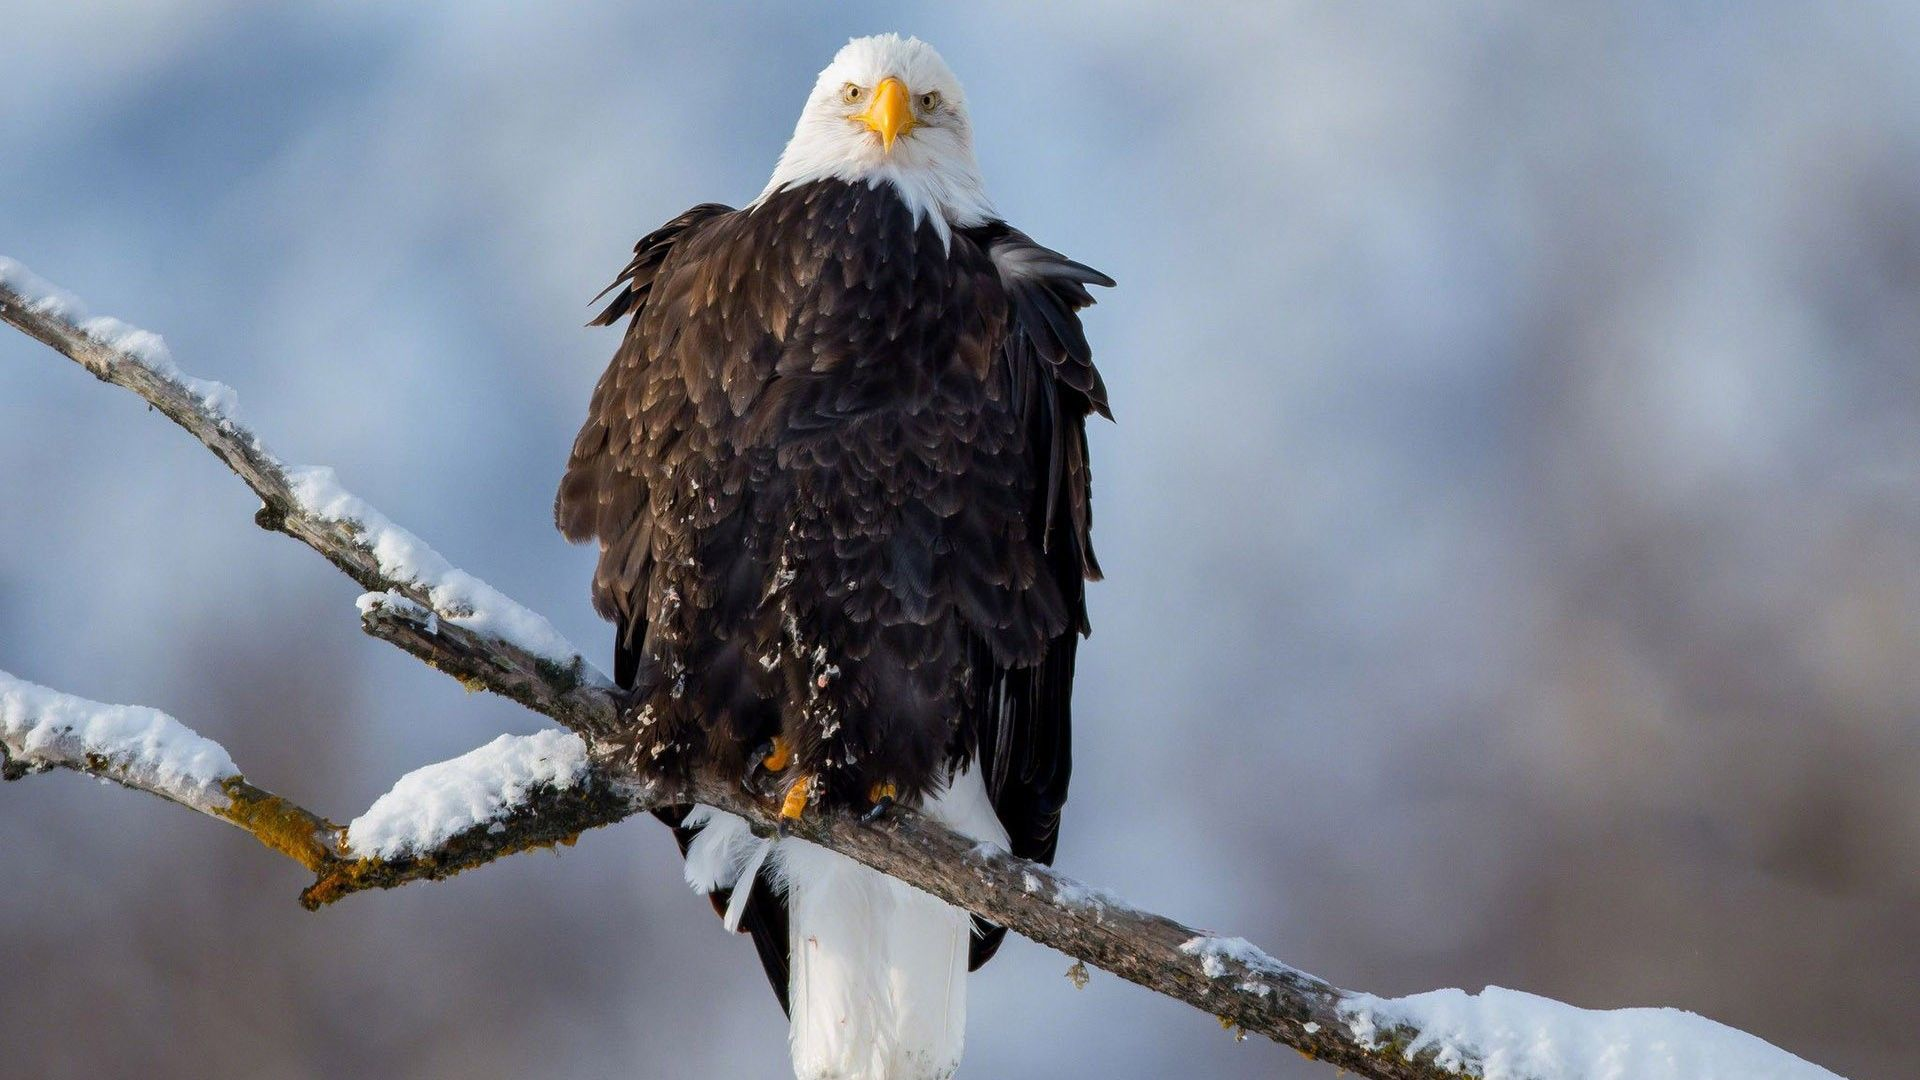 show me a picture of a eagle